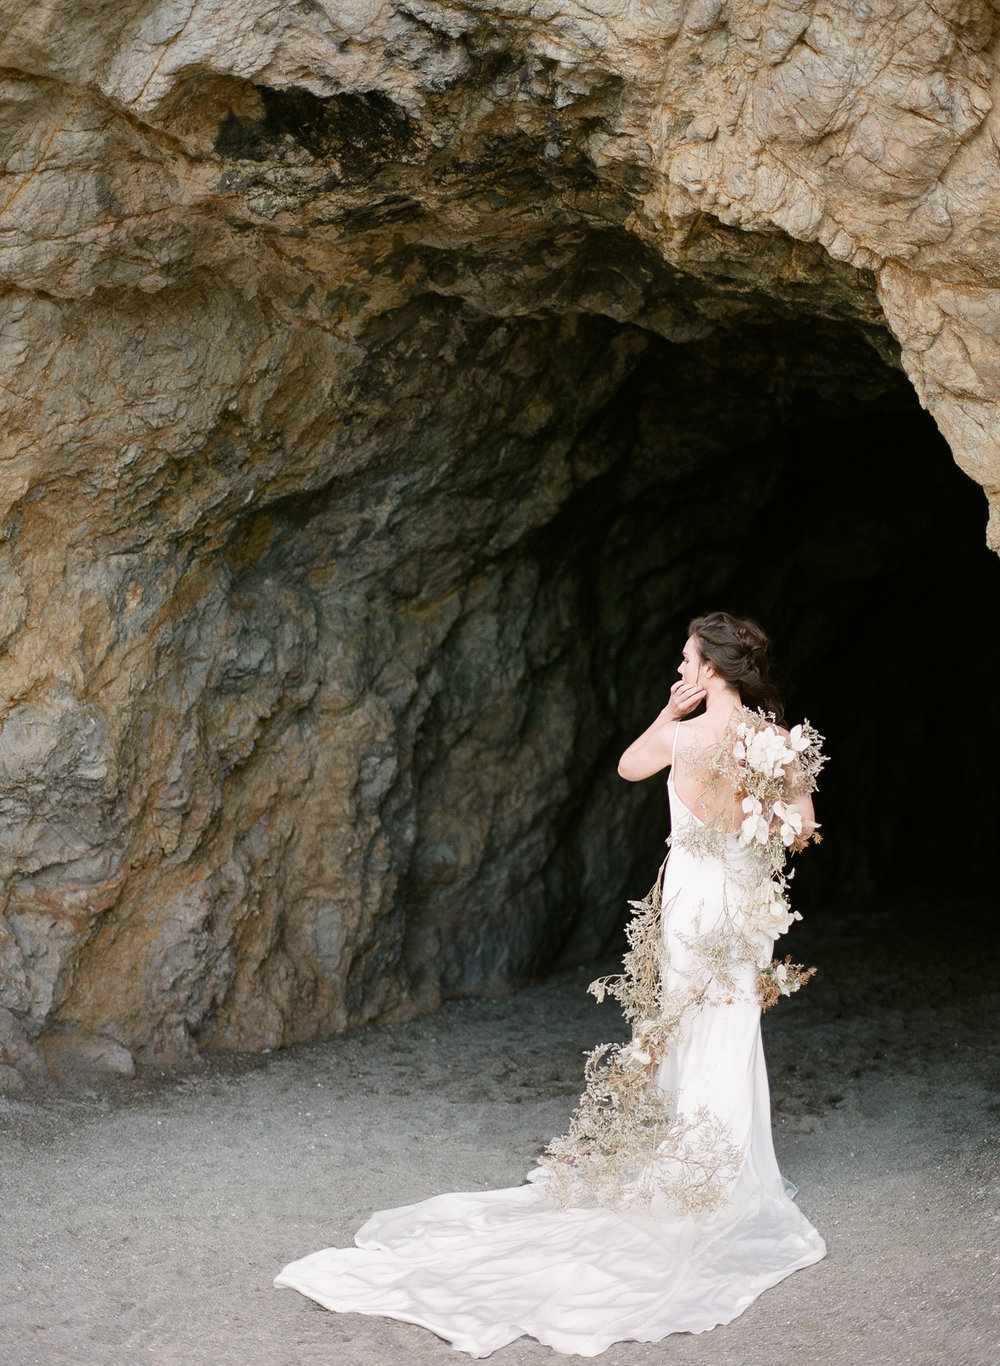 San-Francisco-Wedding-Film-Photography-29.jpg